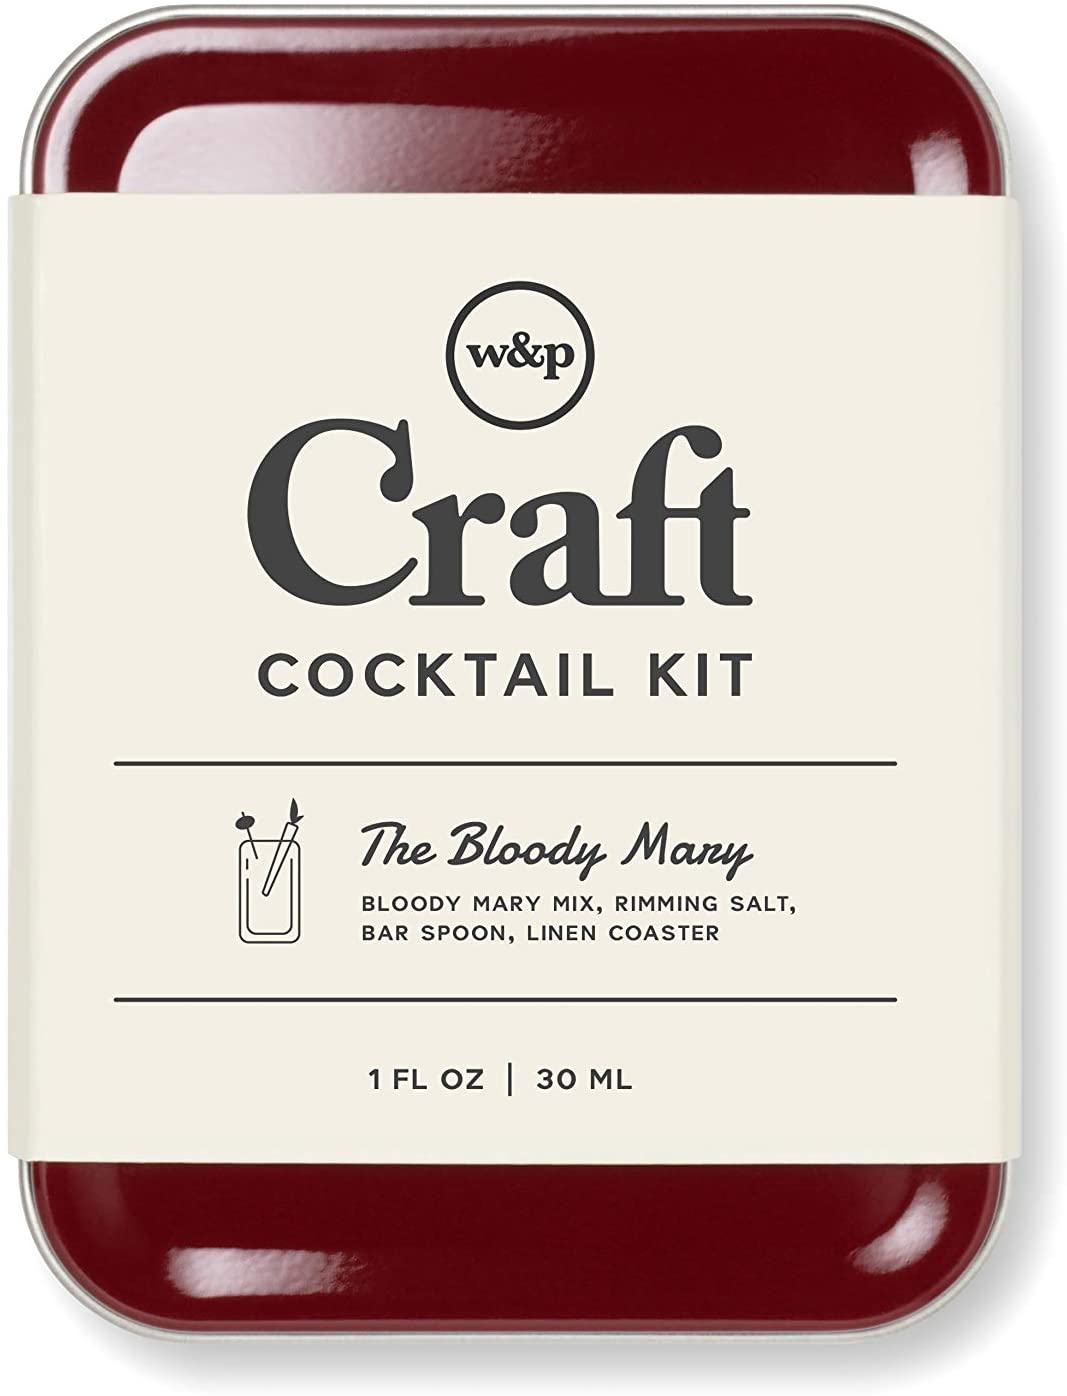 bloody mary cocktail kit, gifts for wife